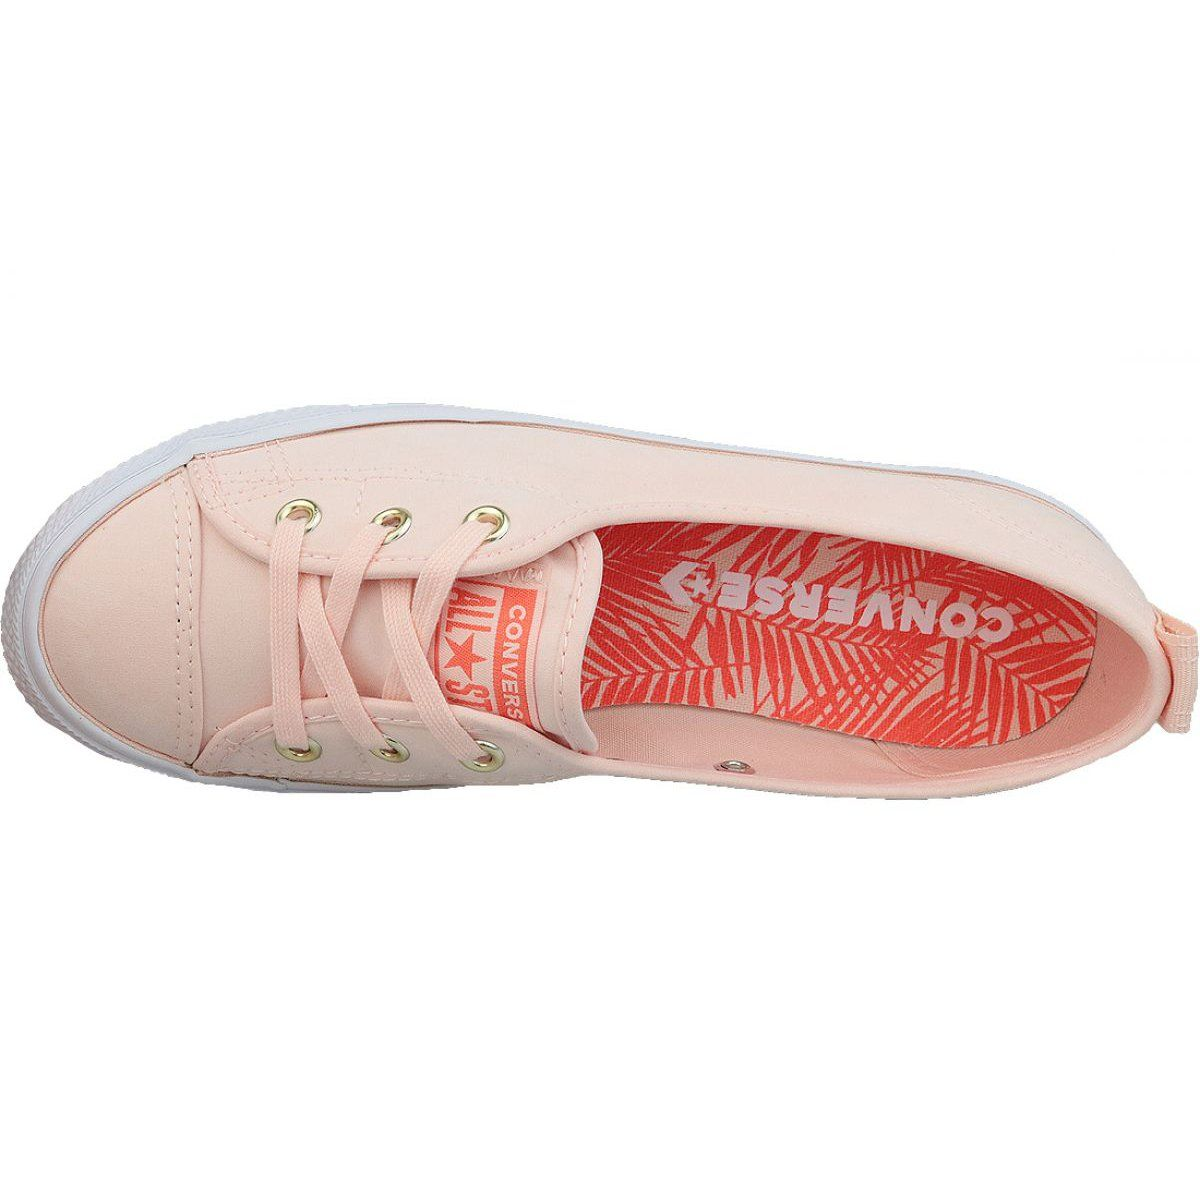 Converse Chuck Taylor All Star Ballet Lace Slip 564313c Orange Shoes Chuck Taylors Converse Chuck Taylor Converse Chuck Taylor All Star